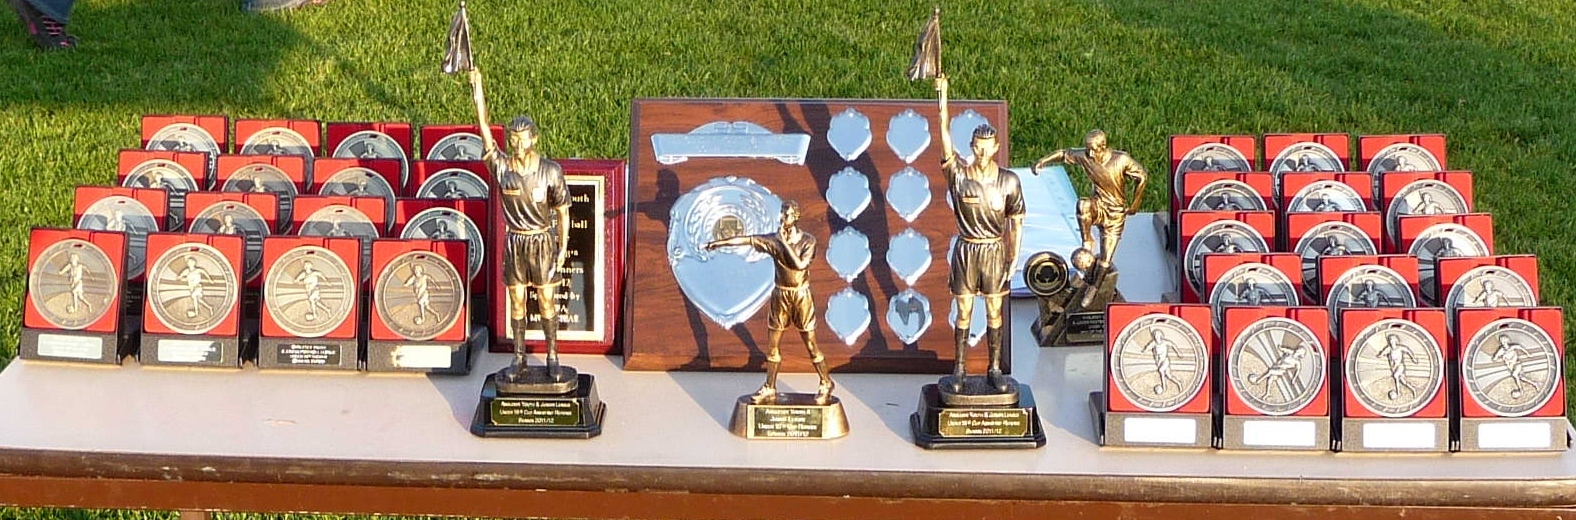 Under 18 Youth Cup shield, trophies and medals from 2011/12 season. PICTURE: Anglesey Junior Football League.